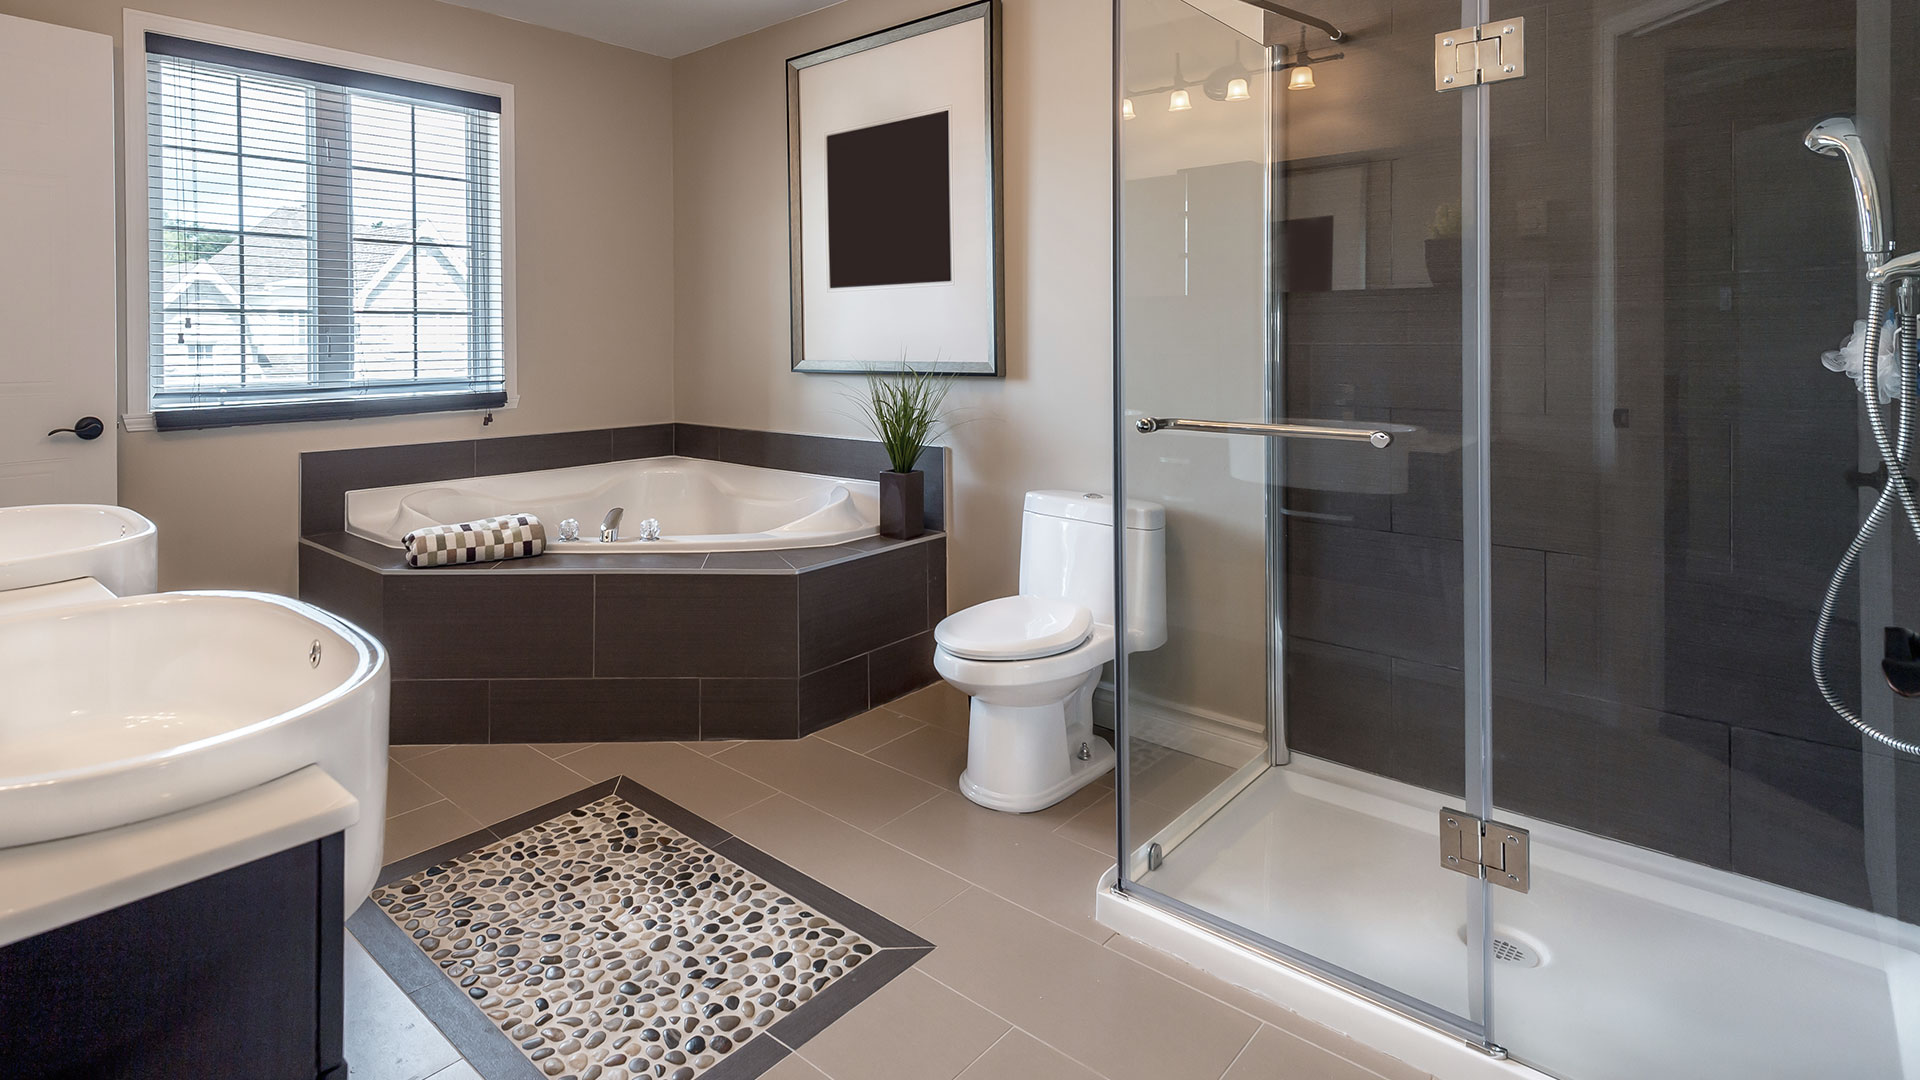 Bathroom Remodeling Rochester Hills Handyman Home Repair And - Local bathroom remodeling companies